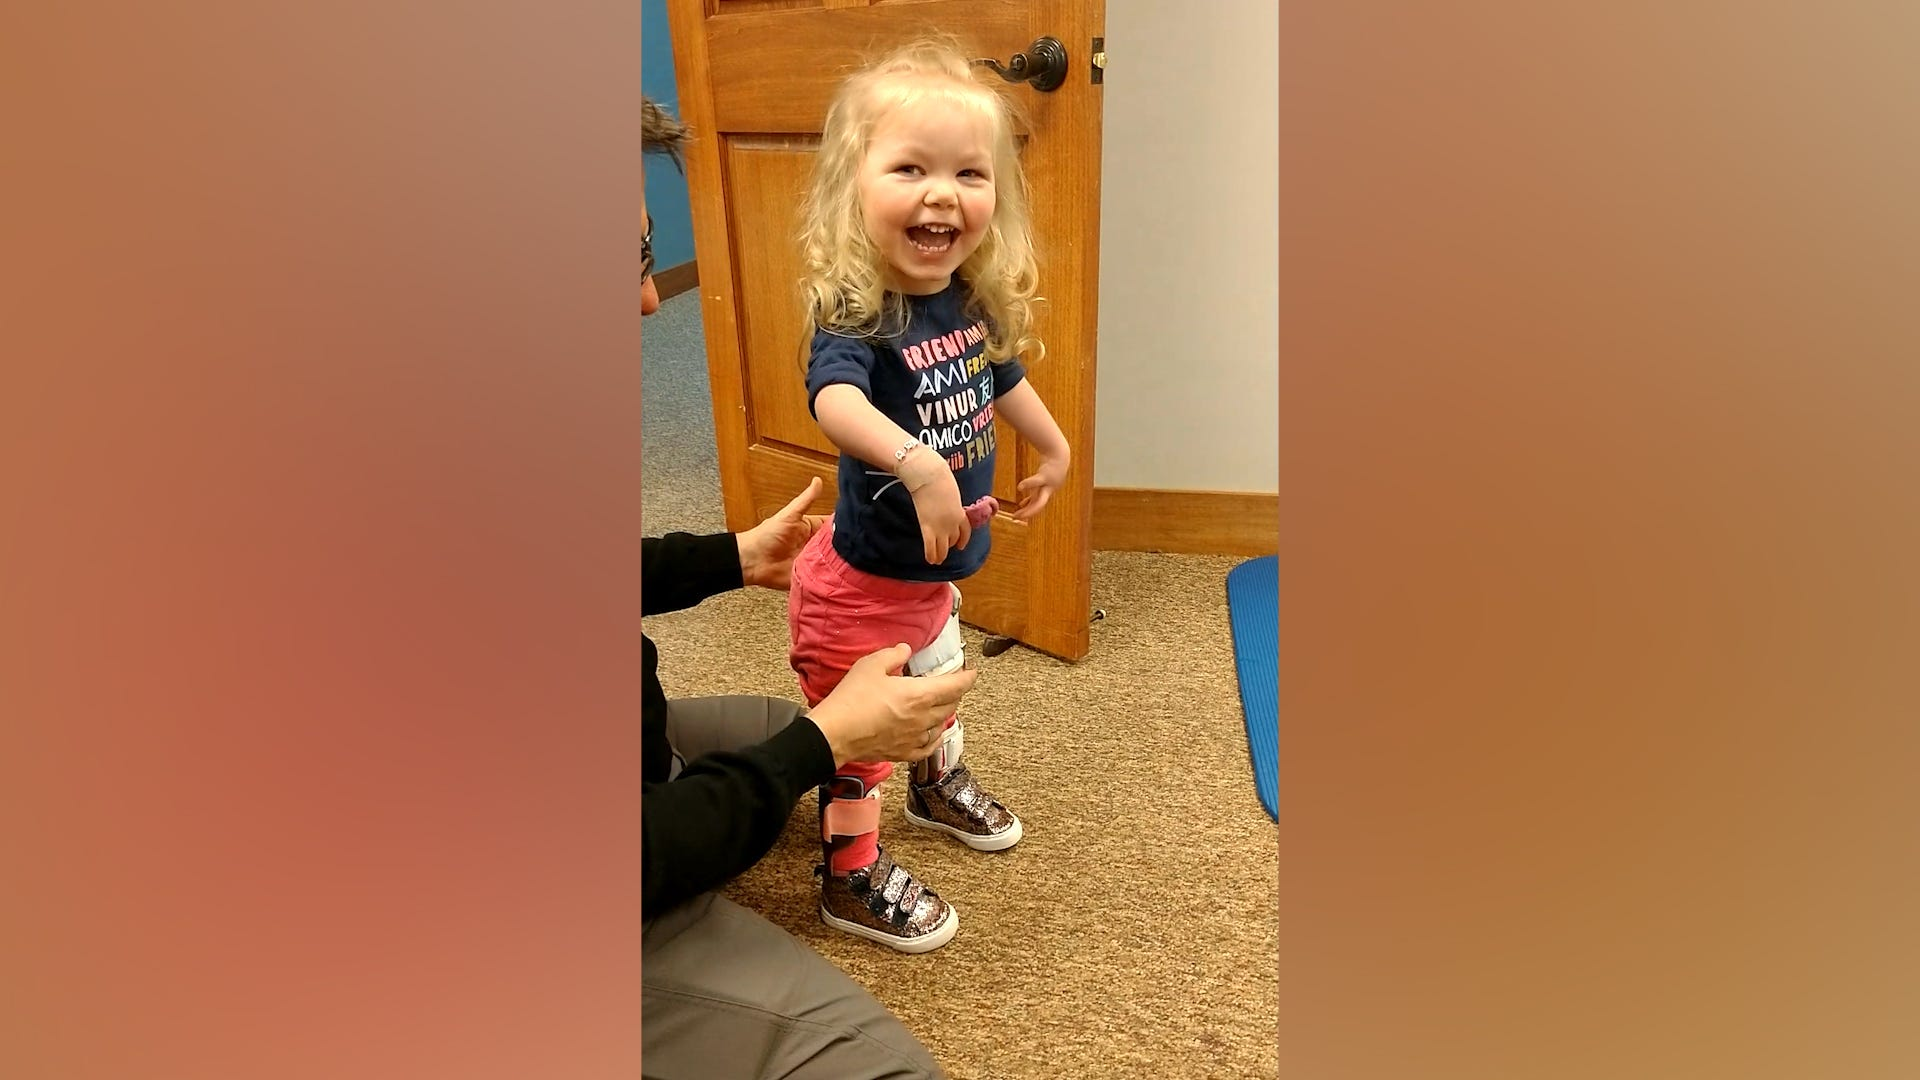 Toddler takes first steps after multiple surgeries